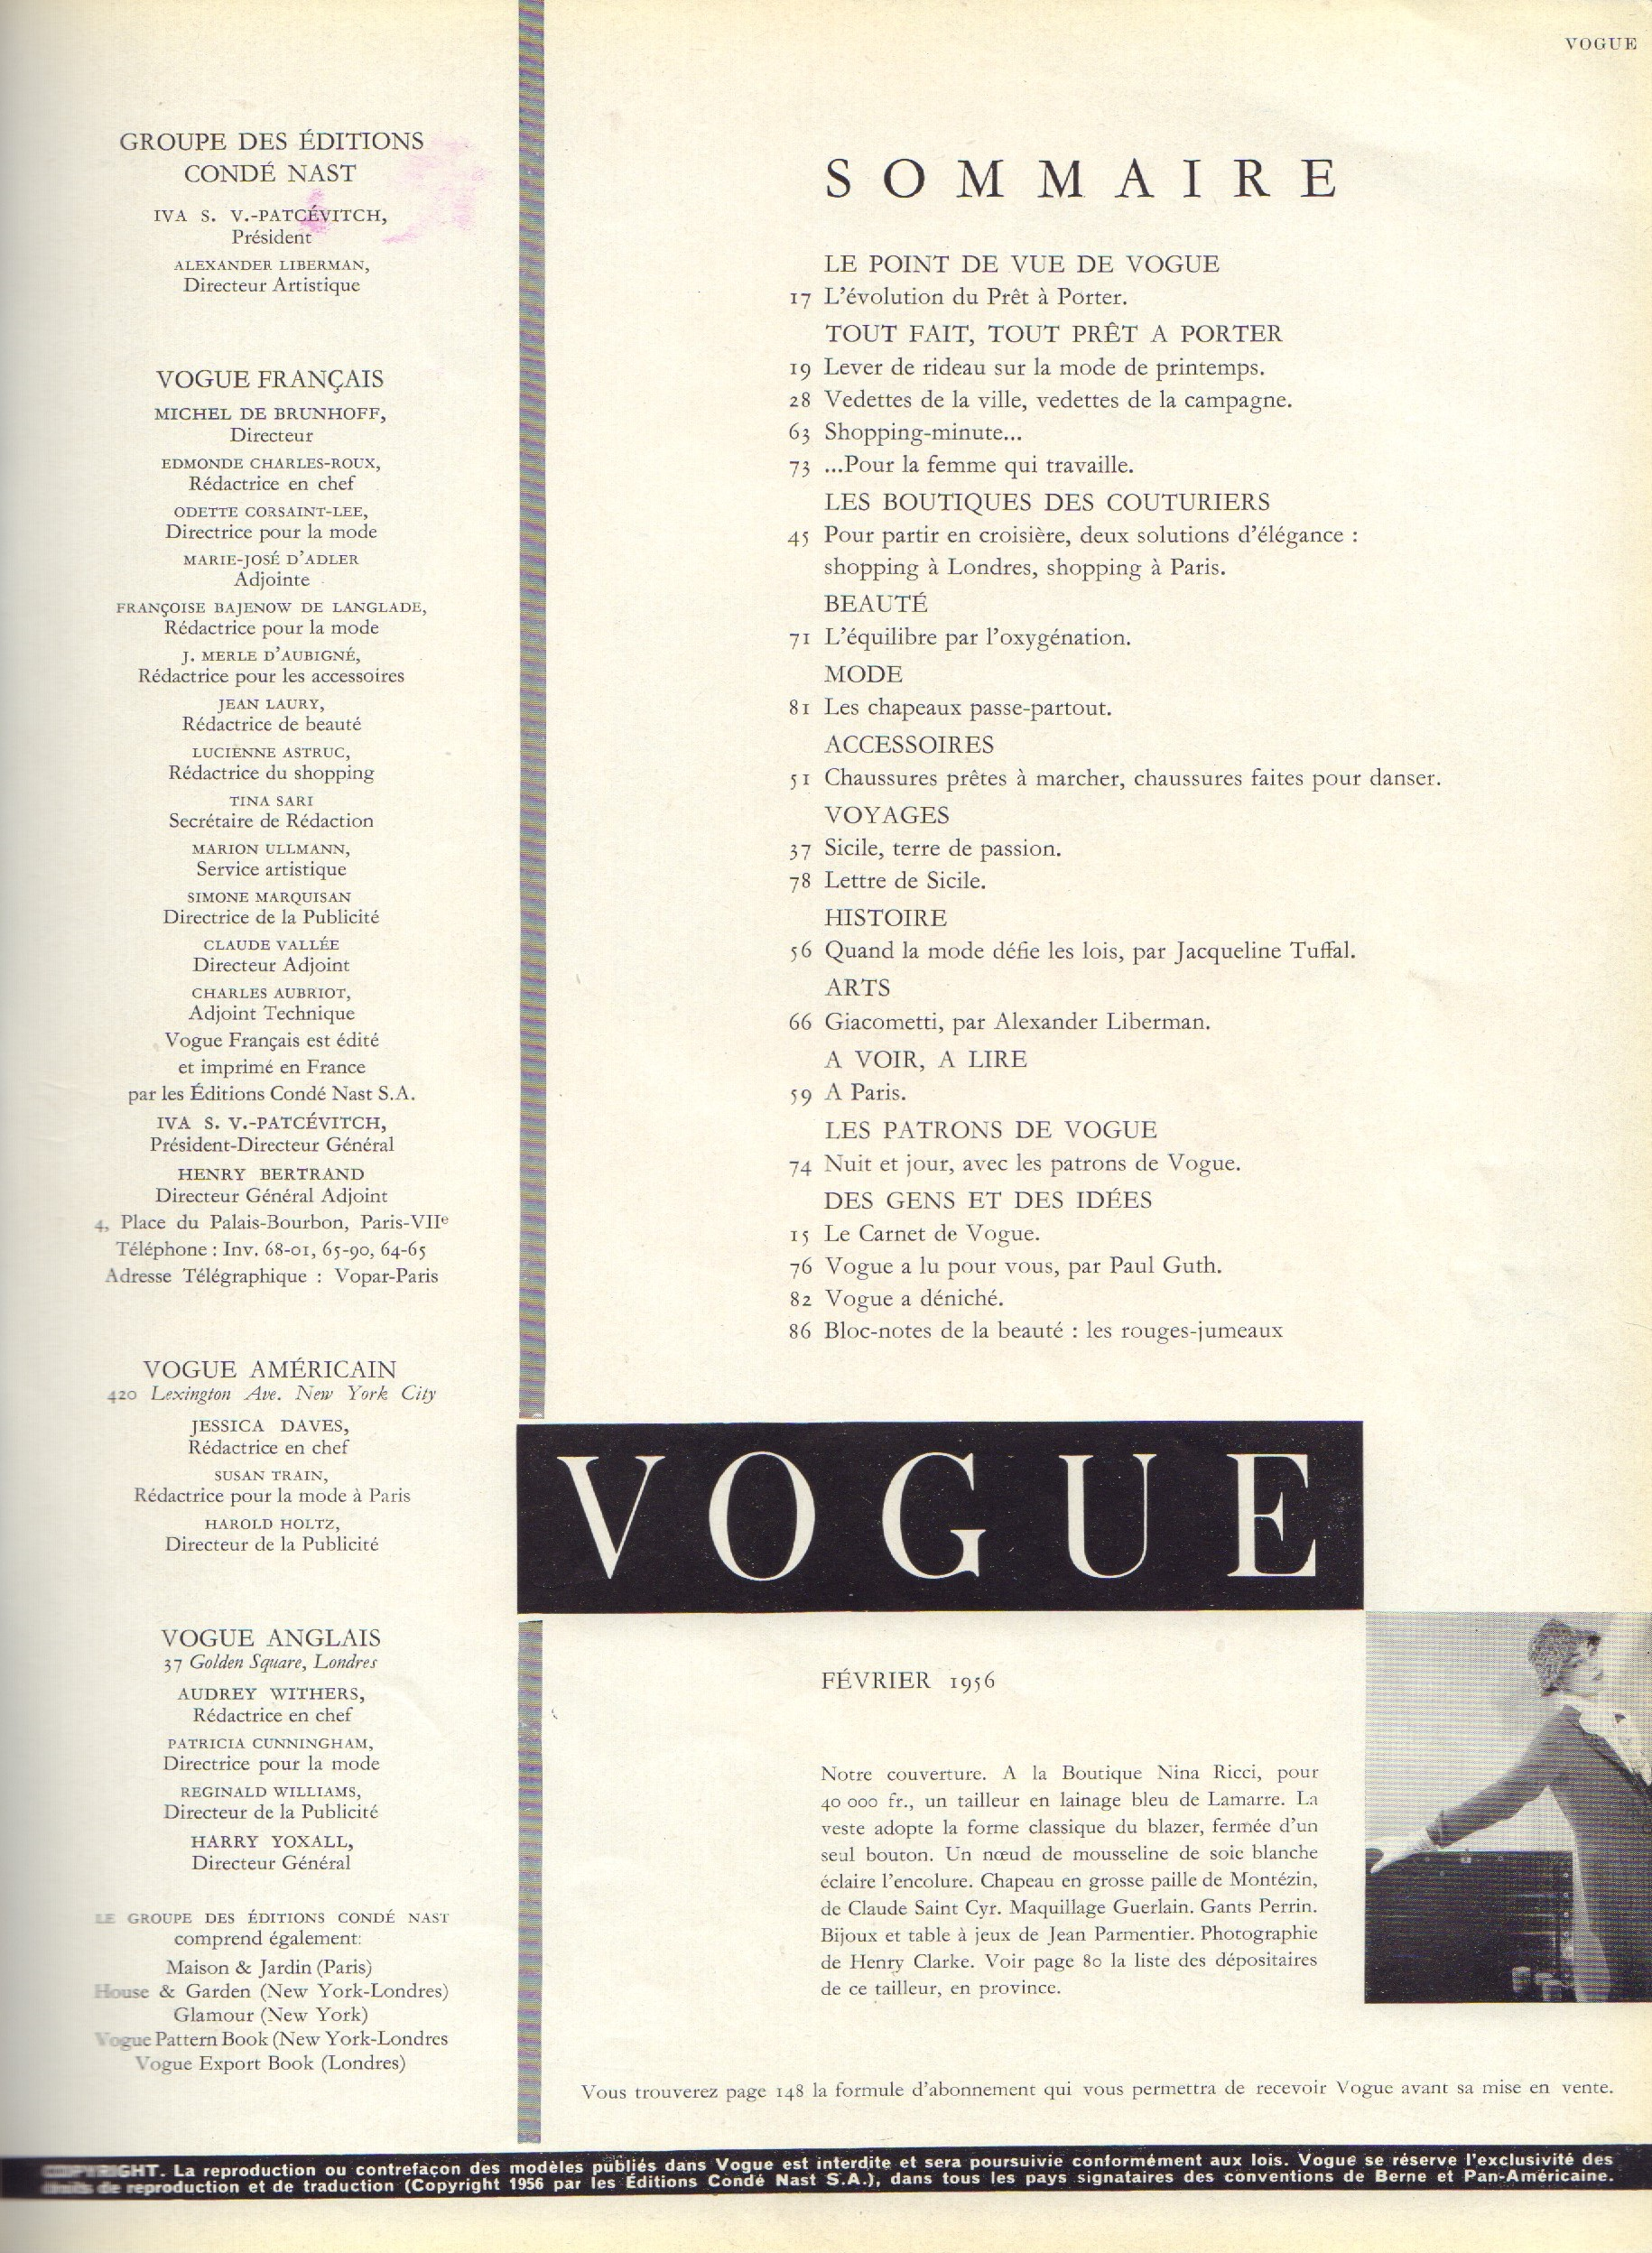 Image for Vogue Fevrier 1956 - French Edition (February)